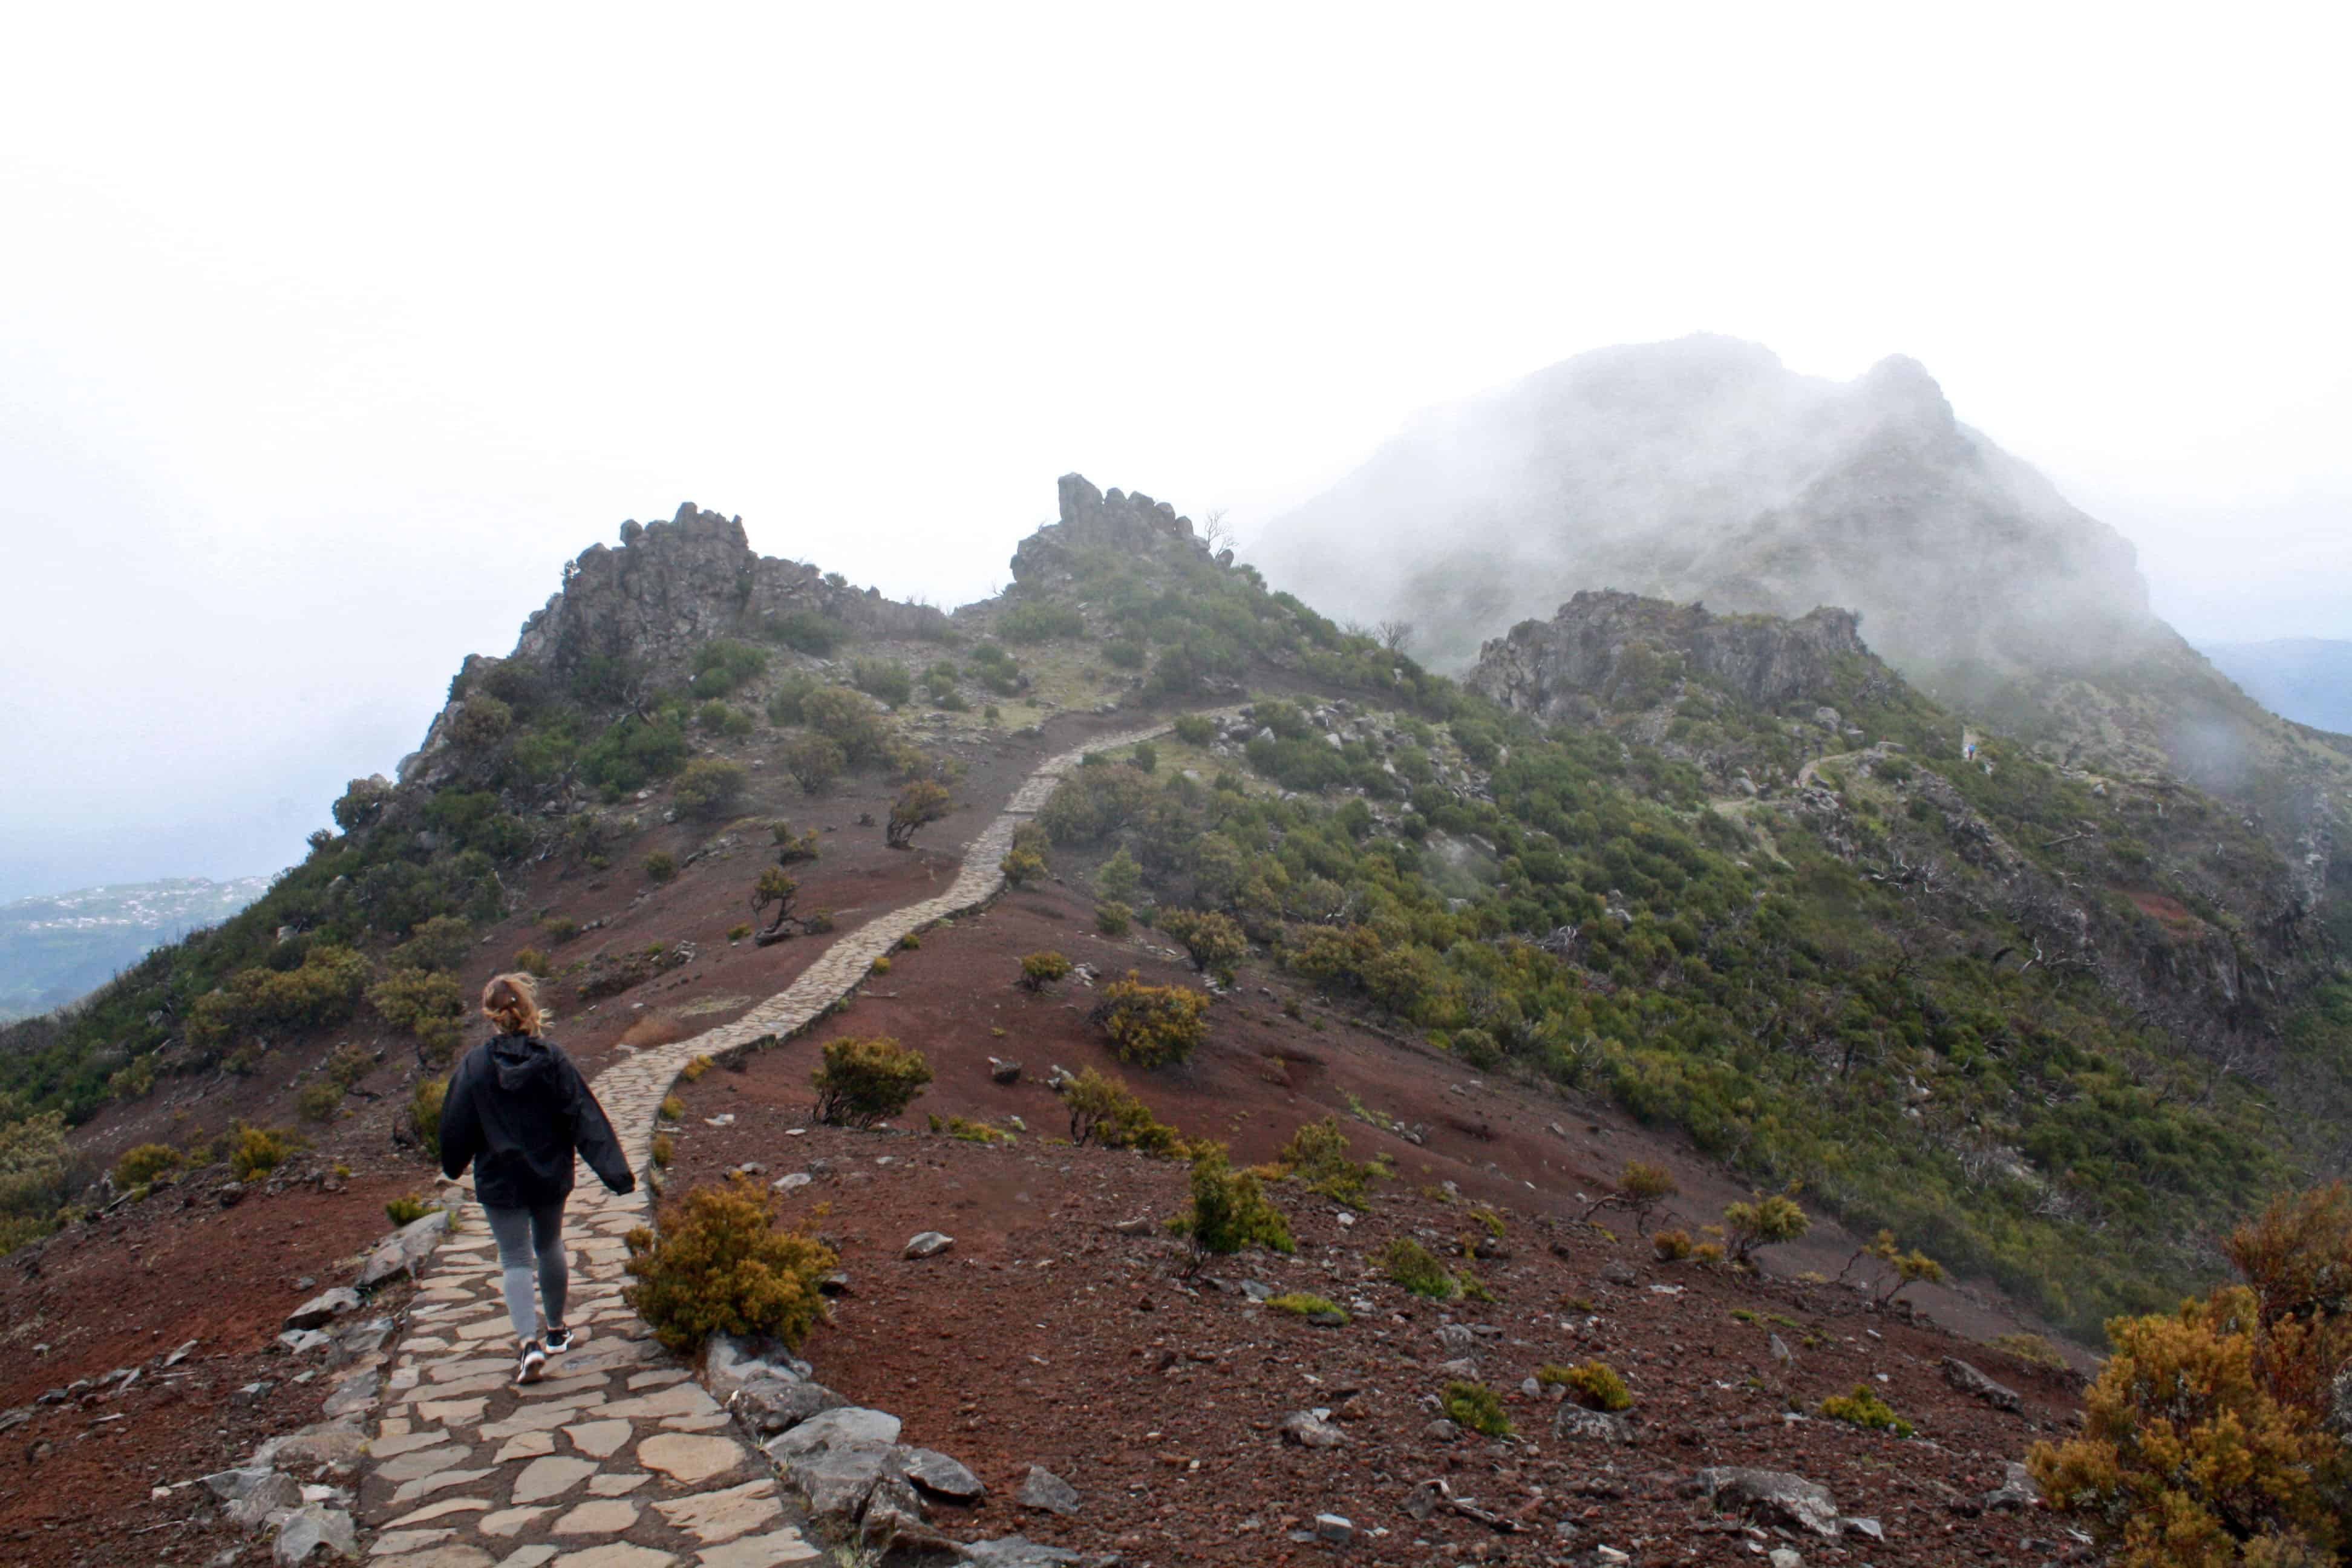 Top 10 things to do in Madeira - Travel Guide | Blushrougette